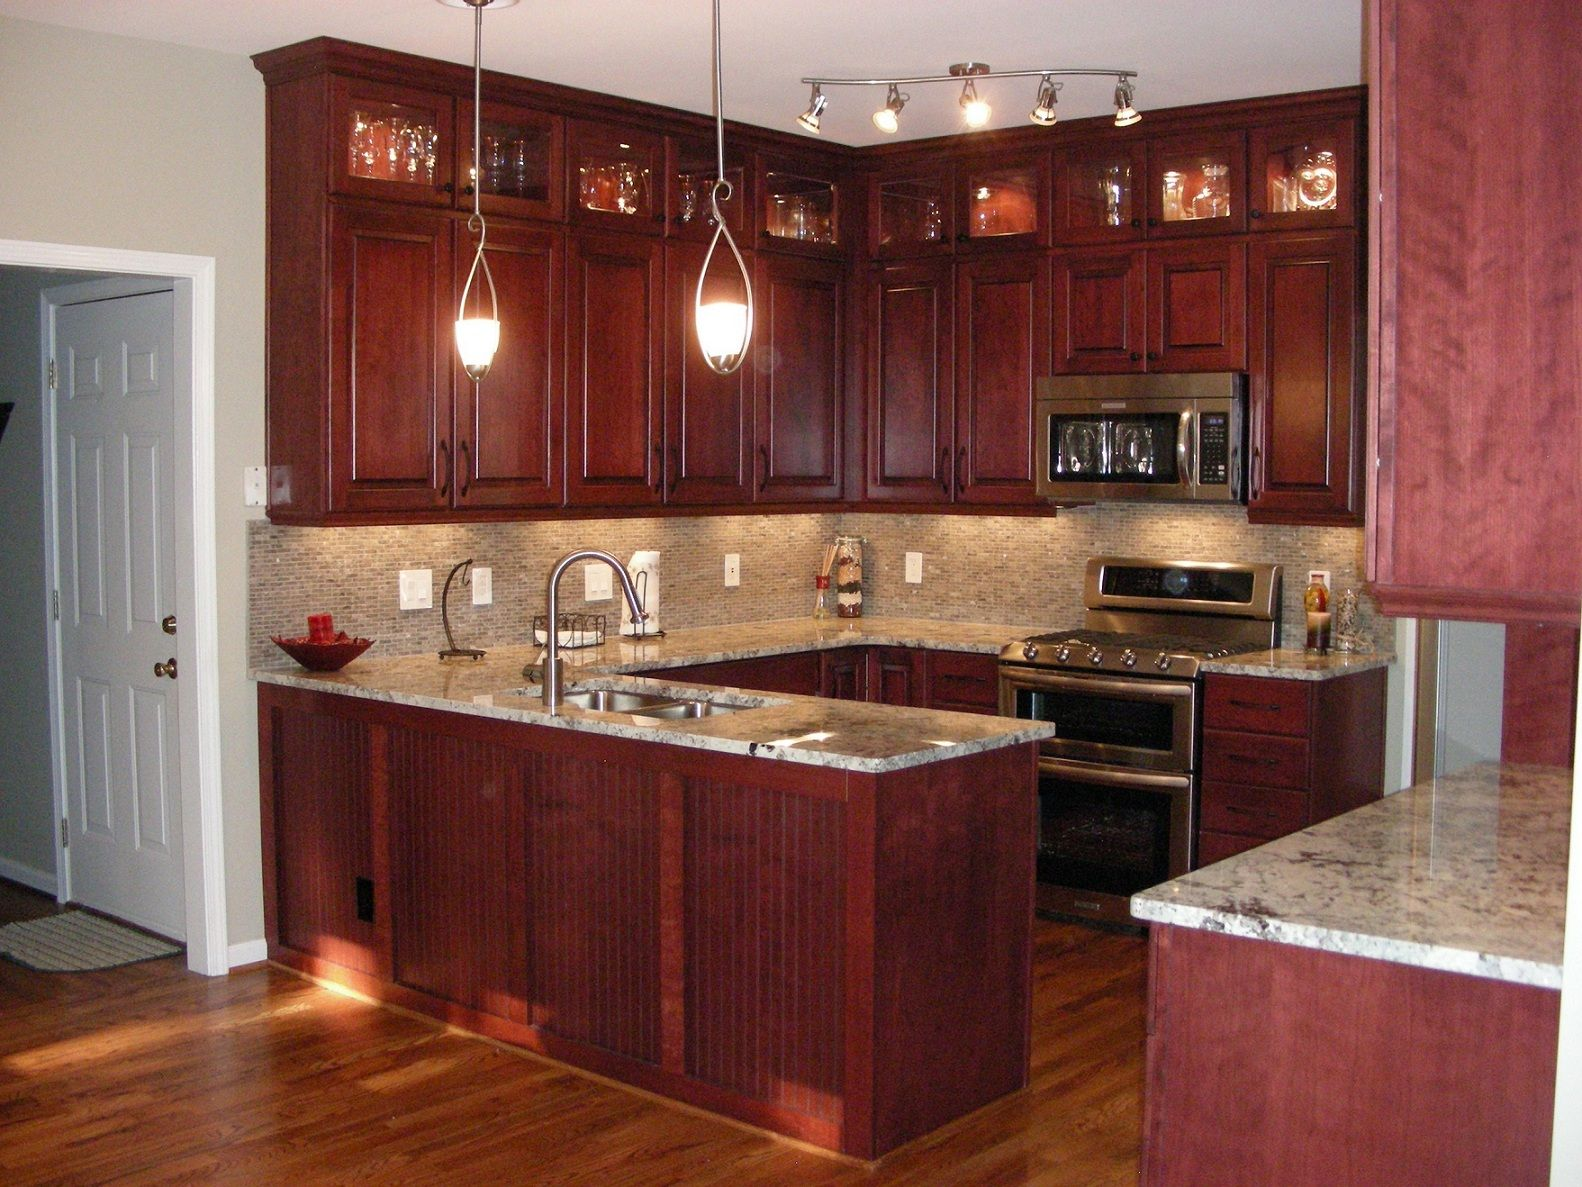 Beau Cherry Kitchen Cabinets In A Thoughtful Design Work Hard To Make This House  A Home